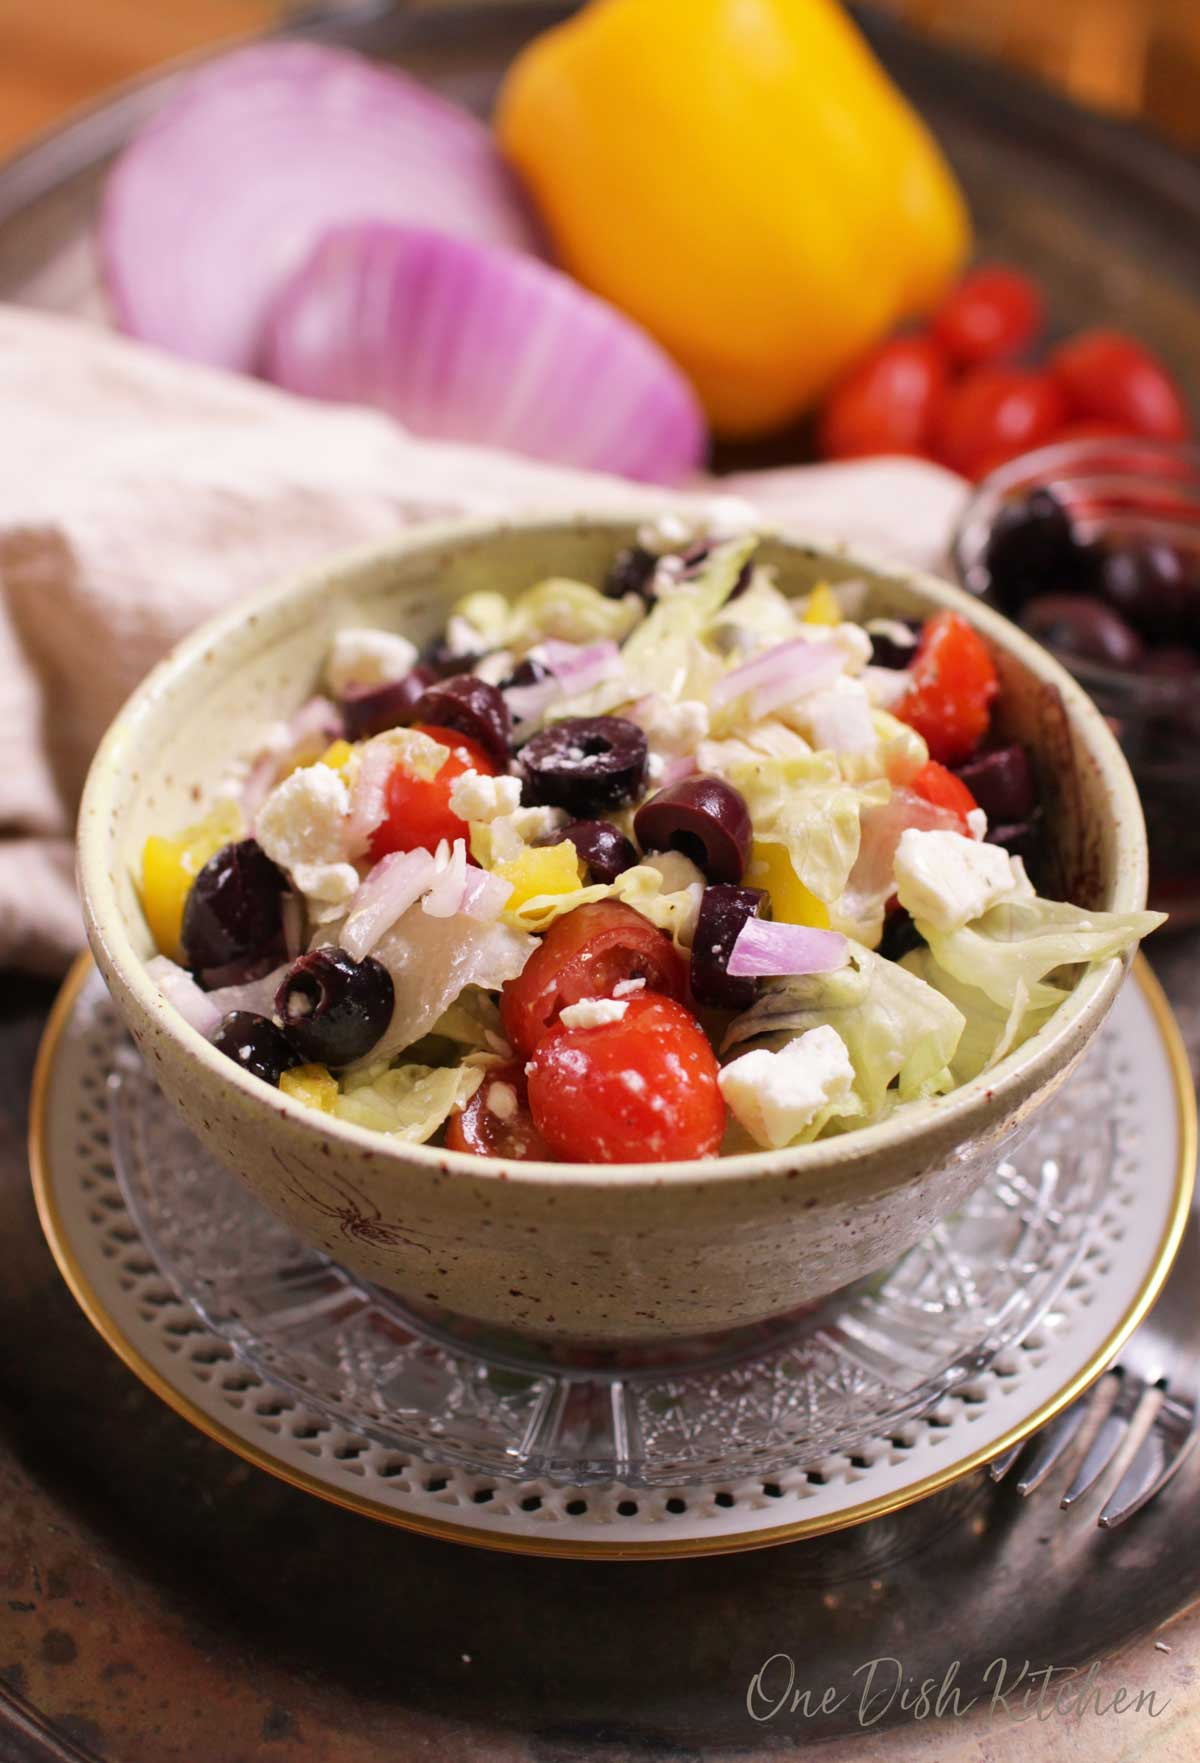 A Greek salad with olives, feta, tomatoes in a bowl with whole vegetables in the background.